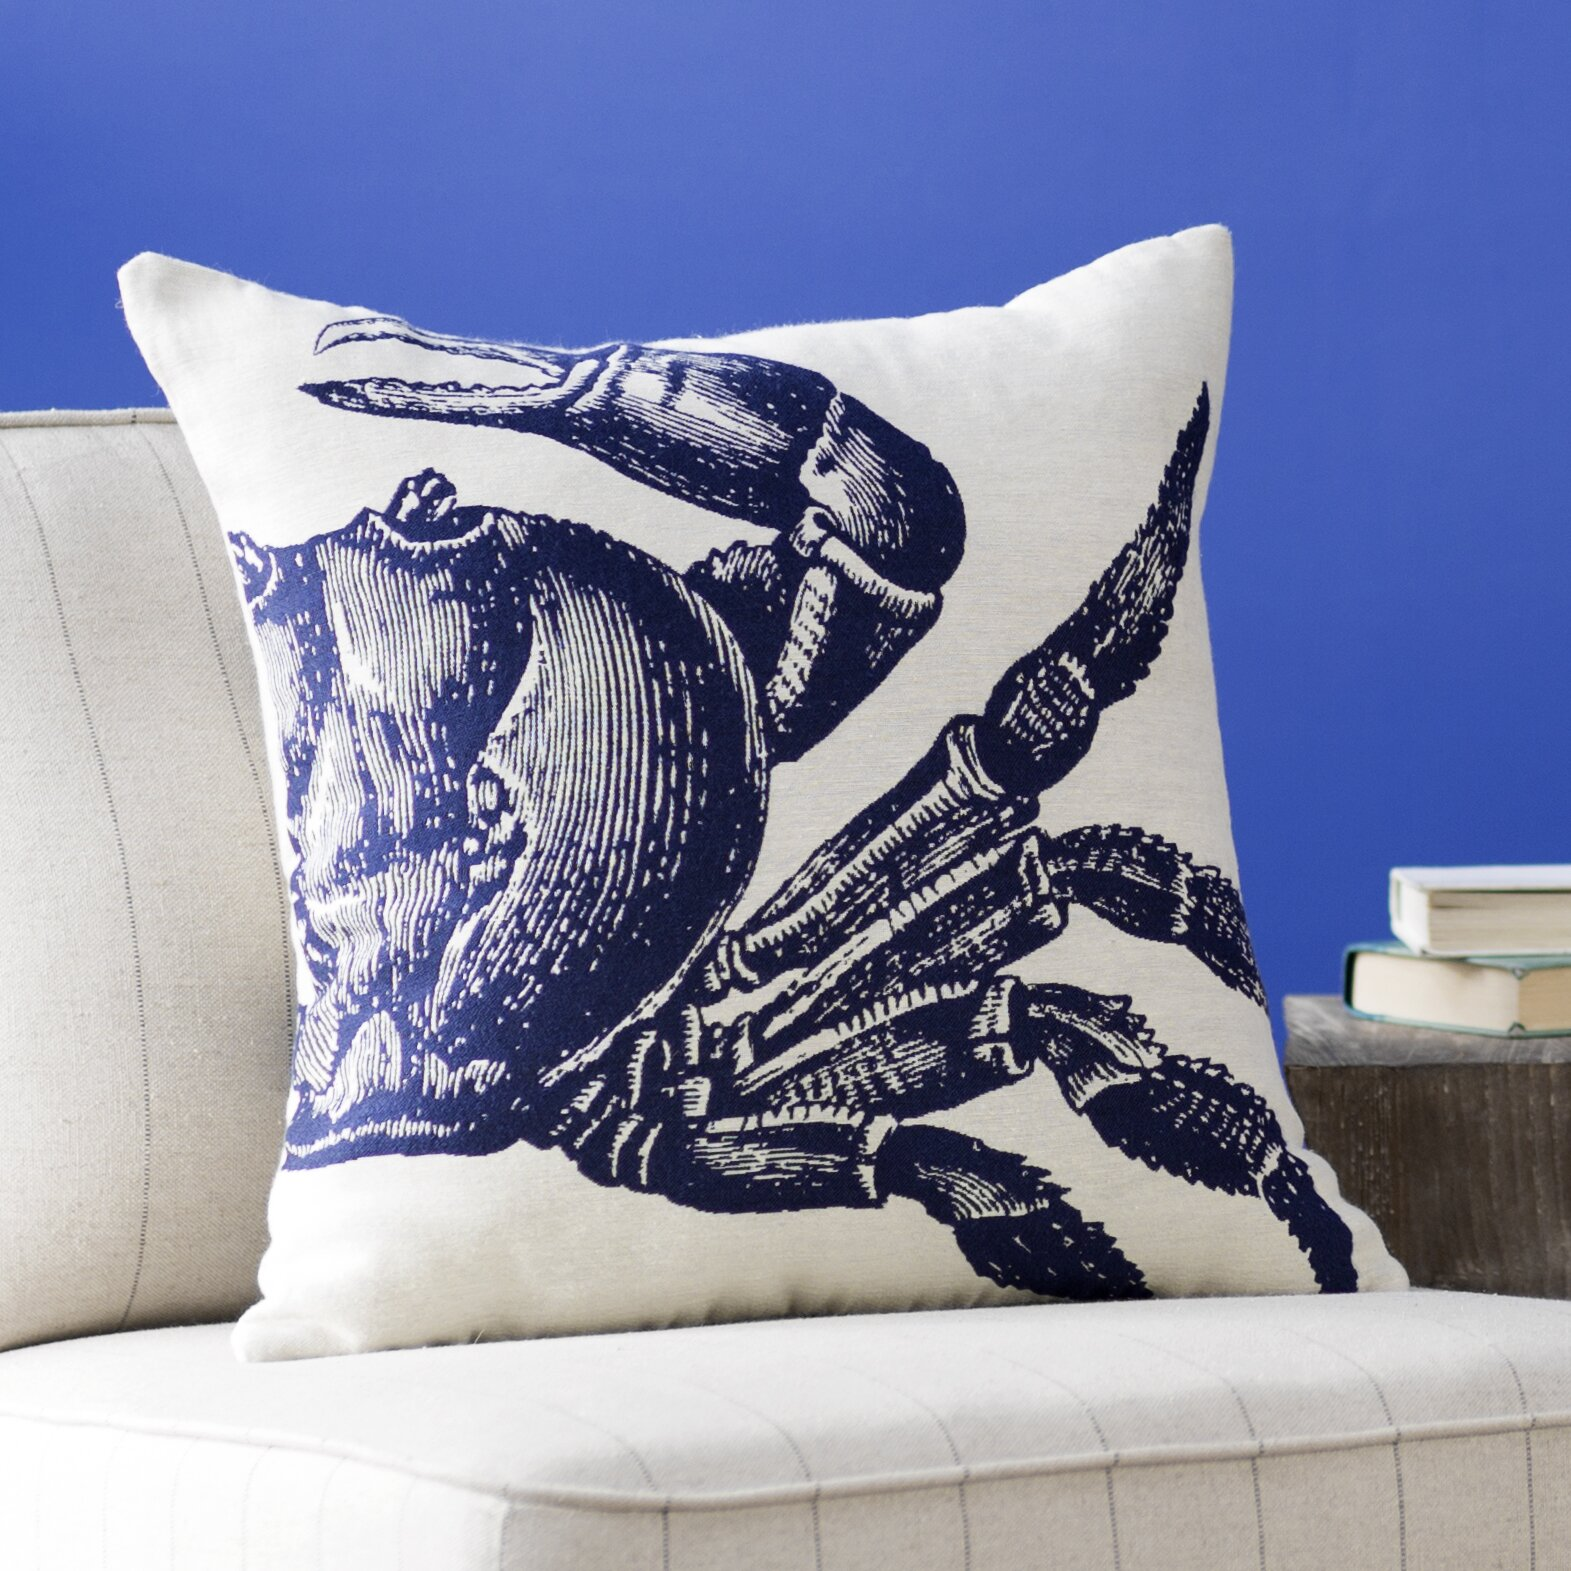 Throw Pillows The Bay : Breakwater Bay Pembrey Sea Crab Throw Pillow & Reviews Wayfair